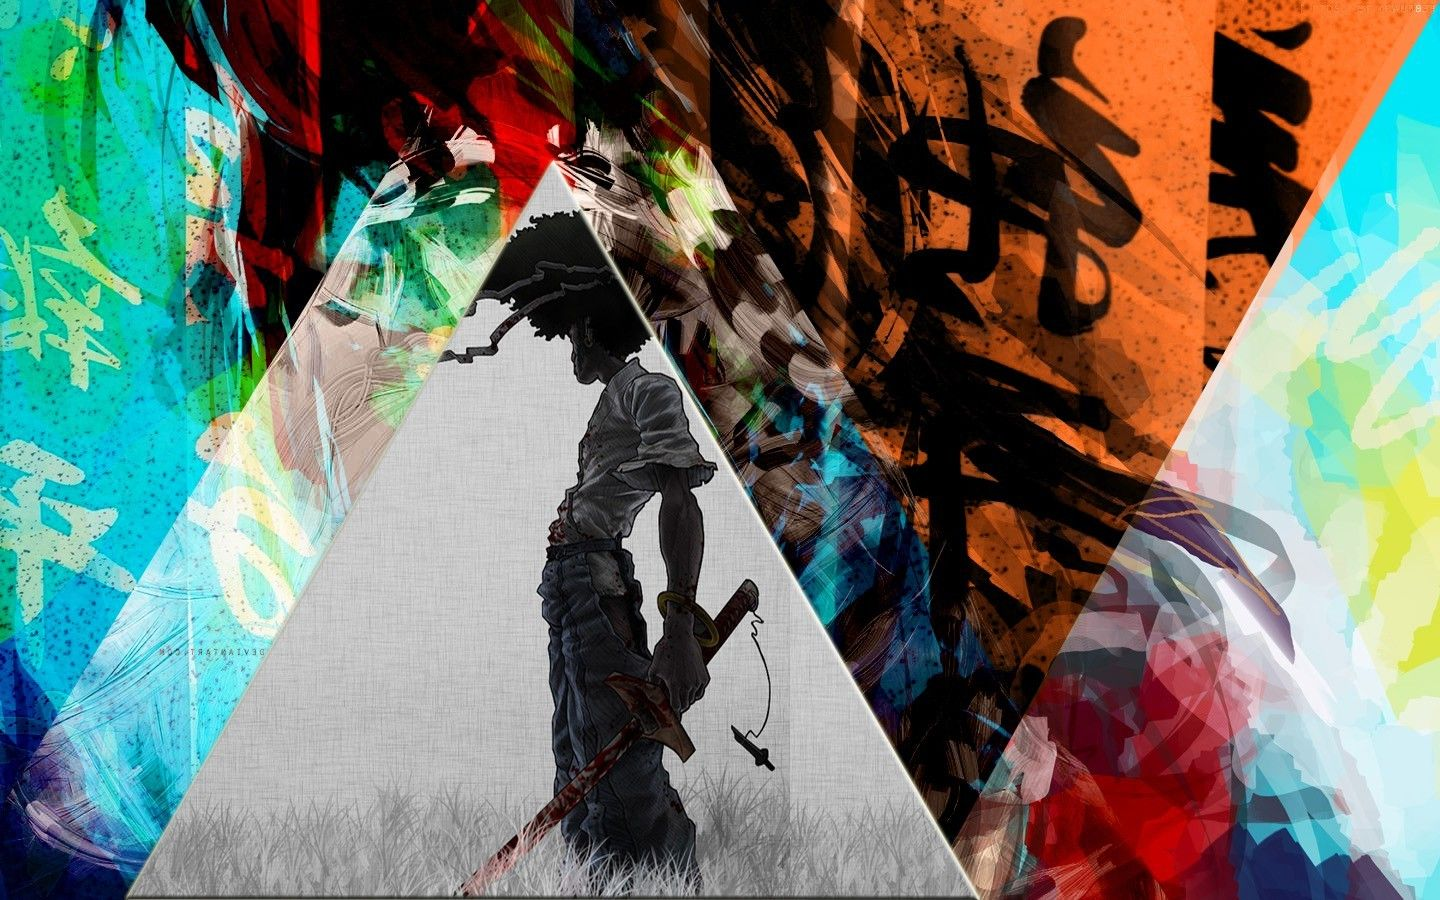 1440x900 Afro Samurai, Colorful, Chinese, Triangle, Mixed Martial Arts ...